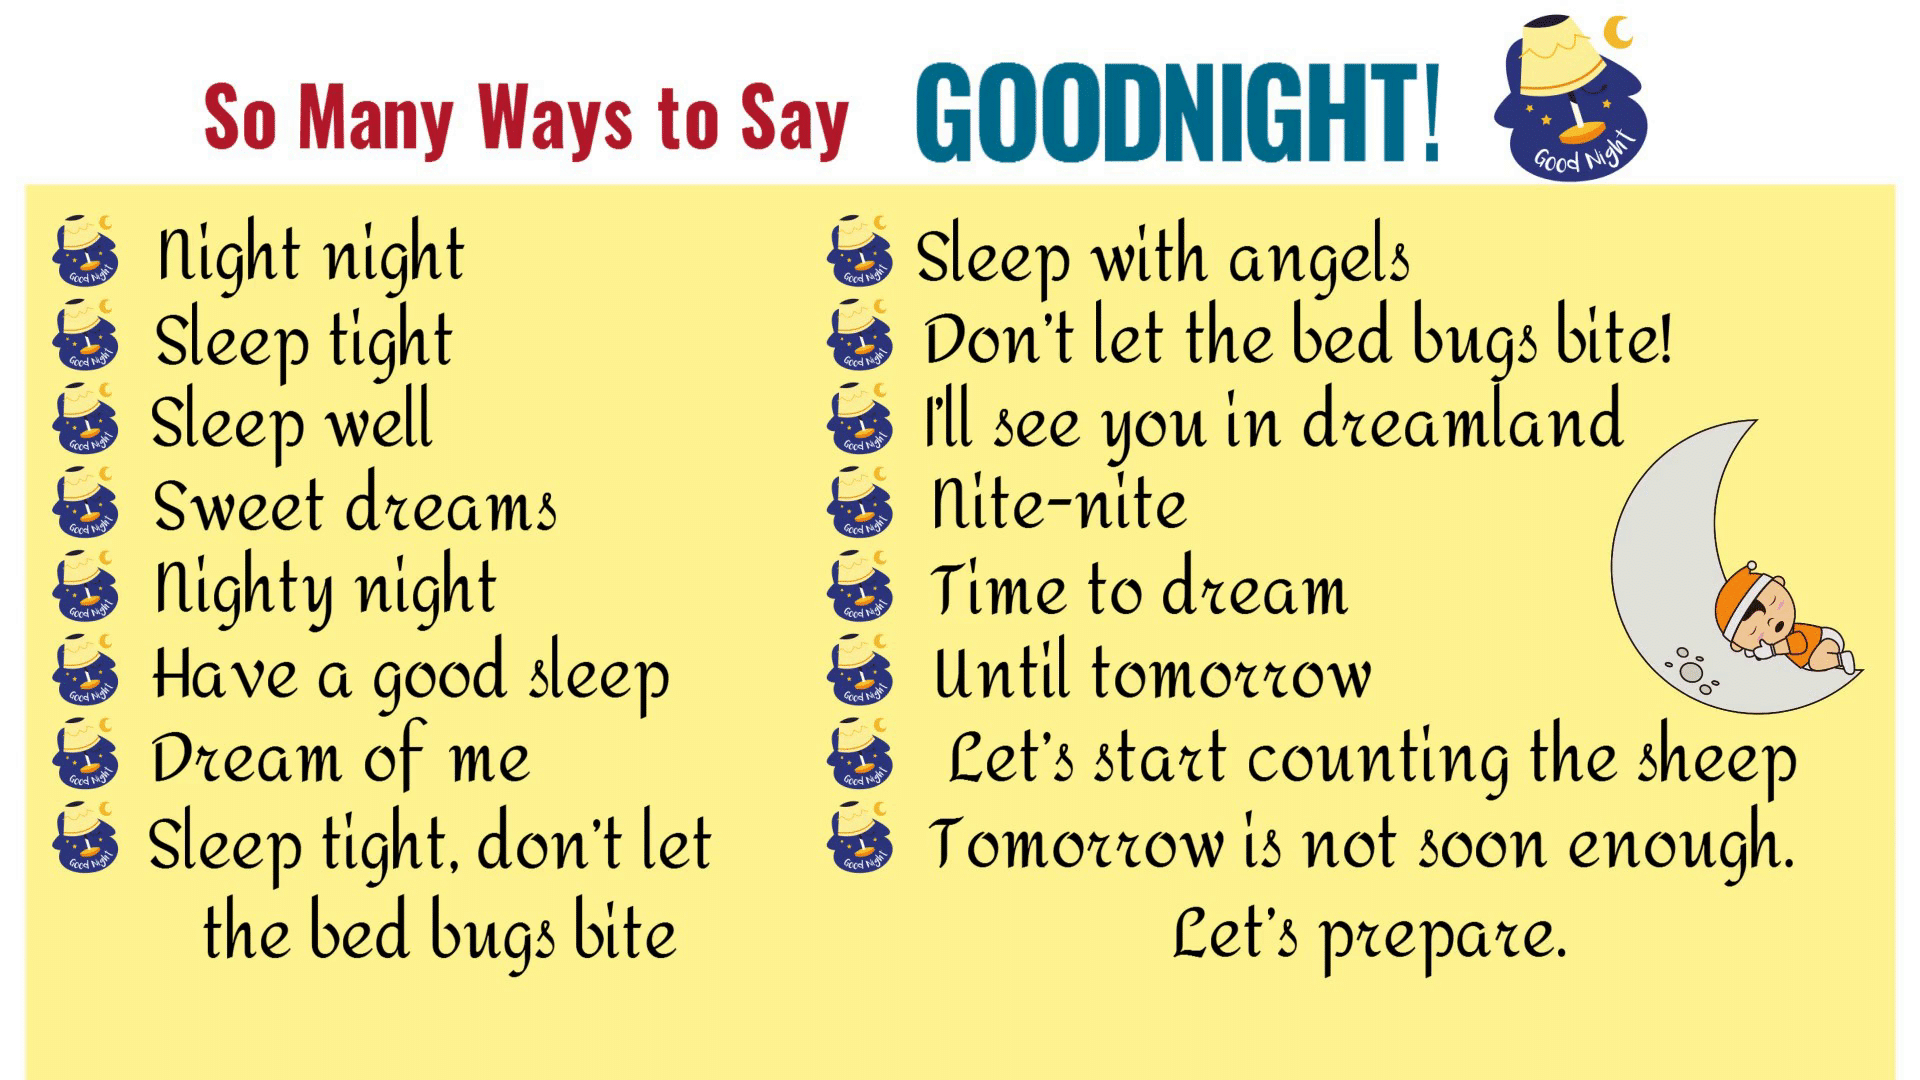 GOODNIGHT Quotes: 18 Funny Goodnight Messages in English